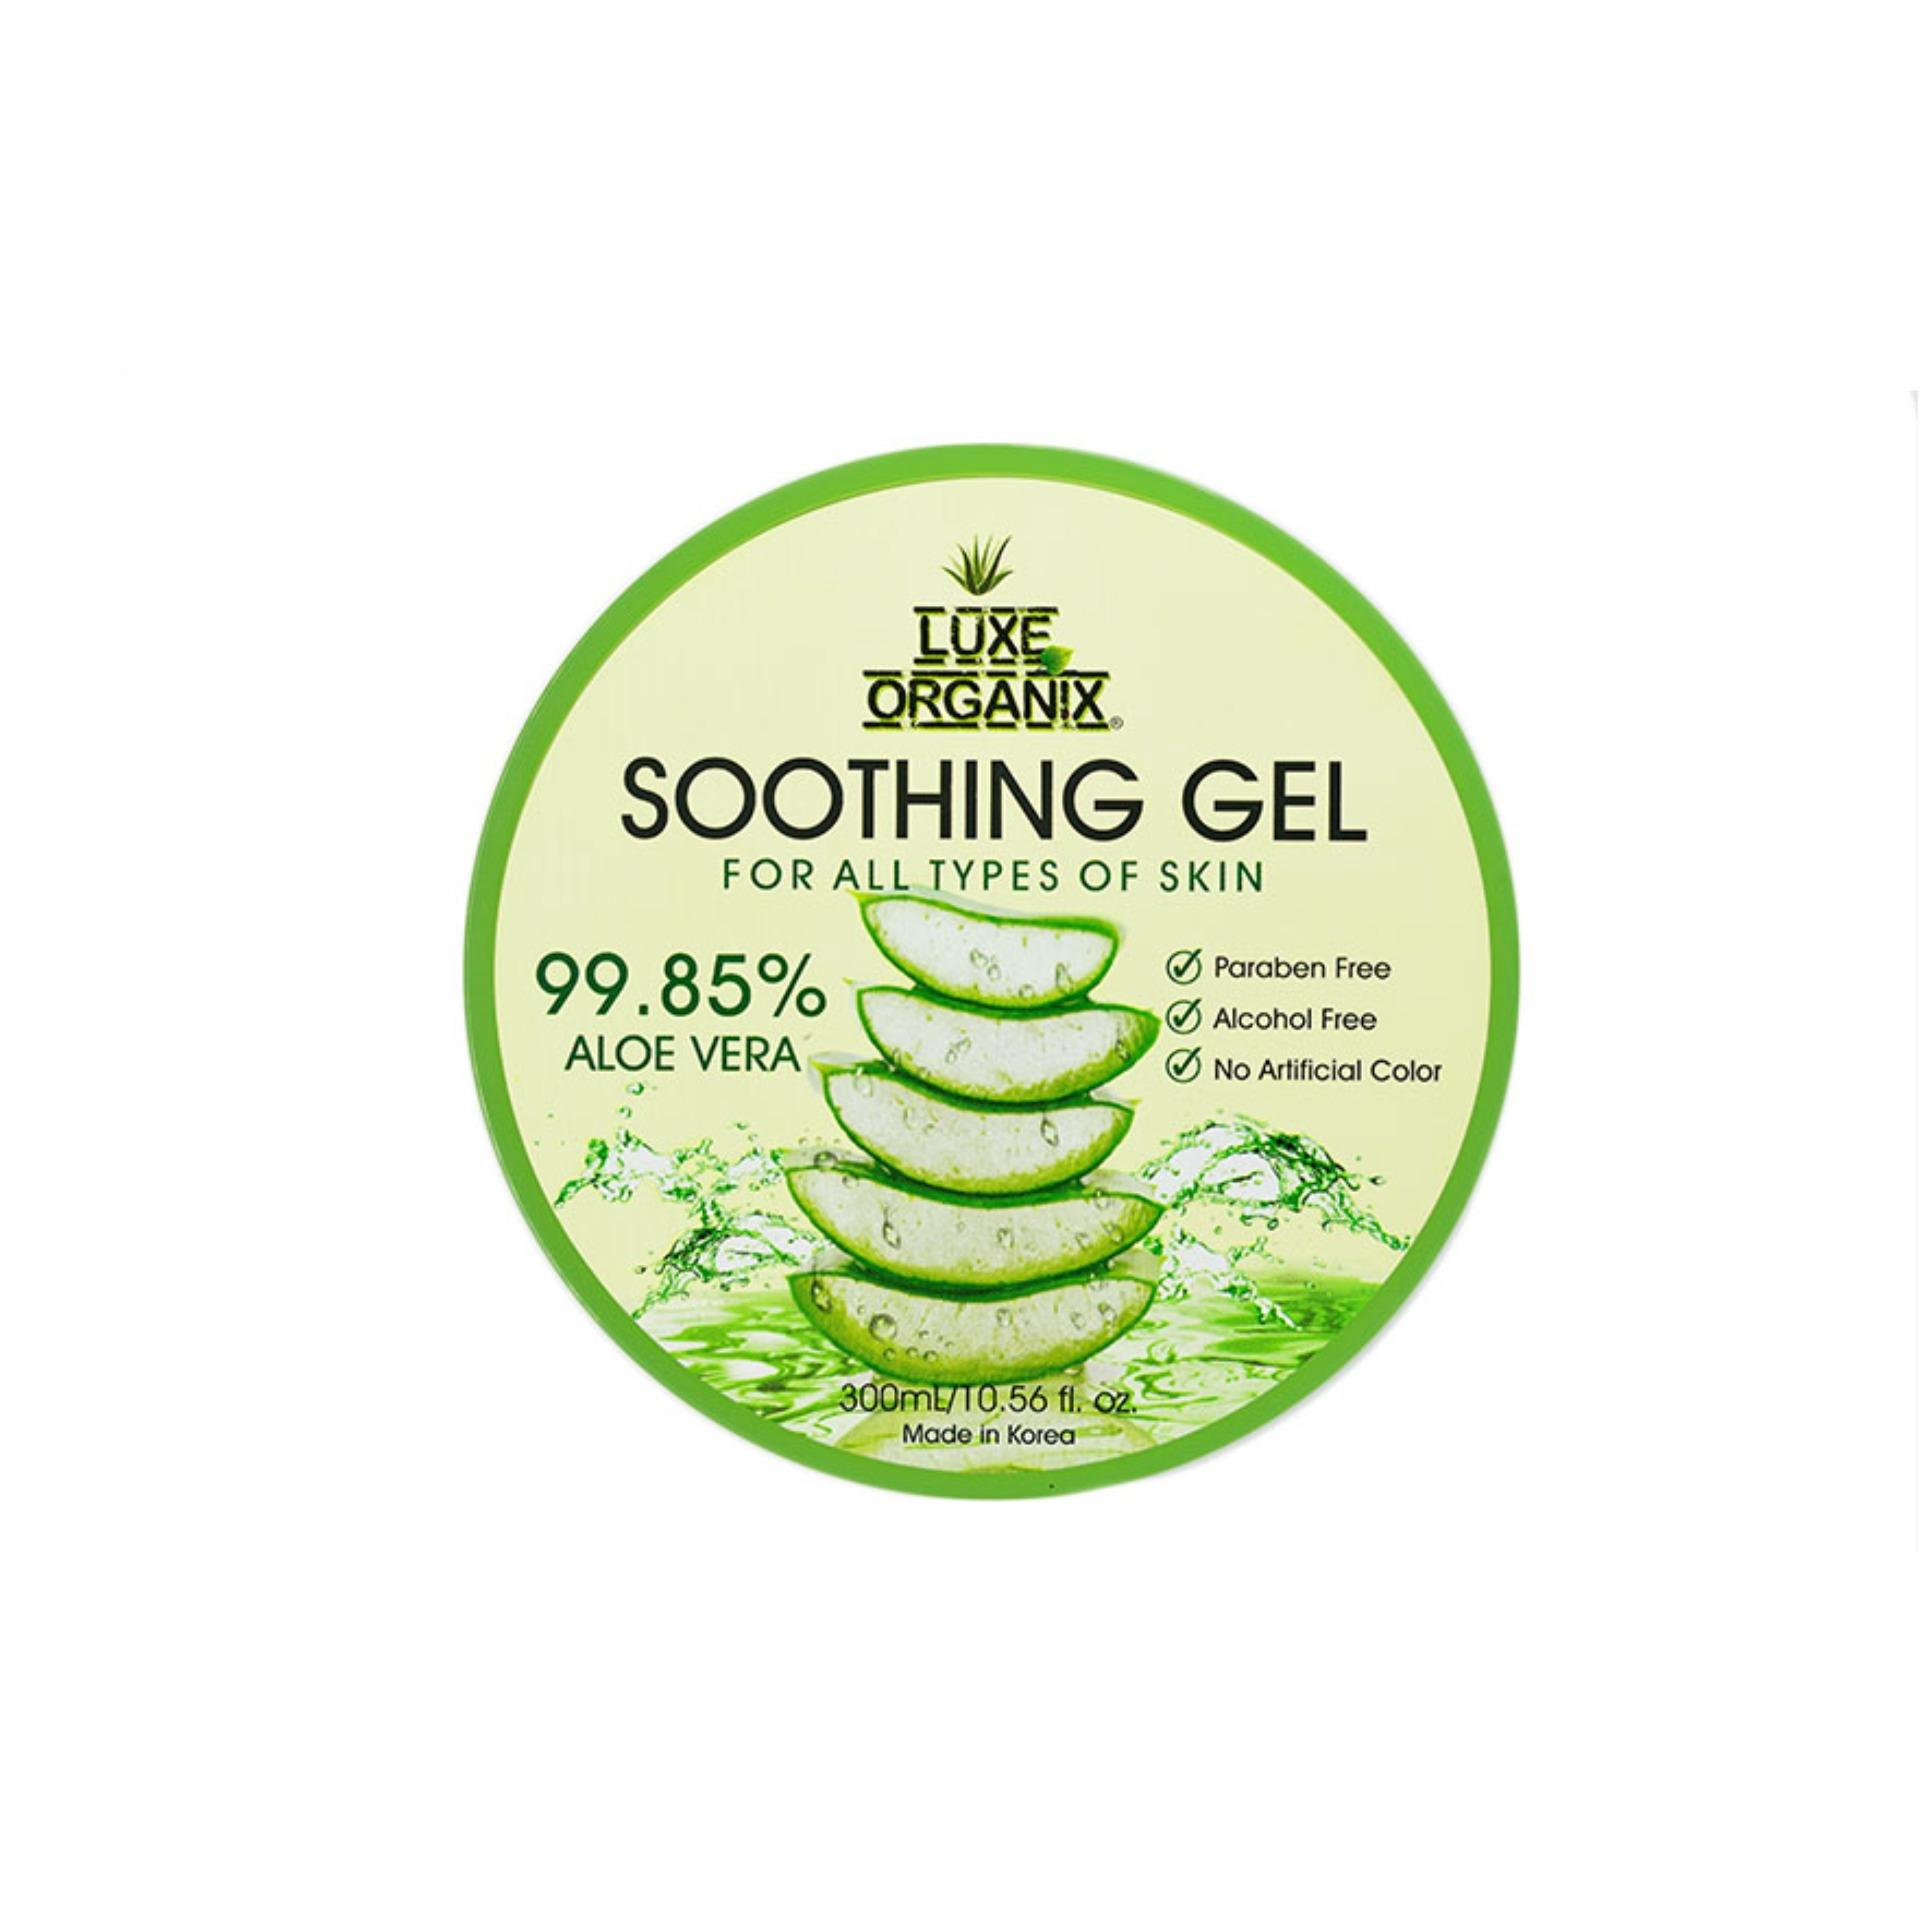 Buy Sell Cheapest Amazing Aloe Vera Best Quality Product Deals Bioaqua Shooting Gel Original Luxe Organix Soothing 300ml